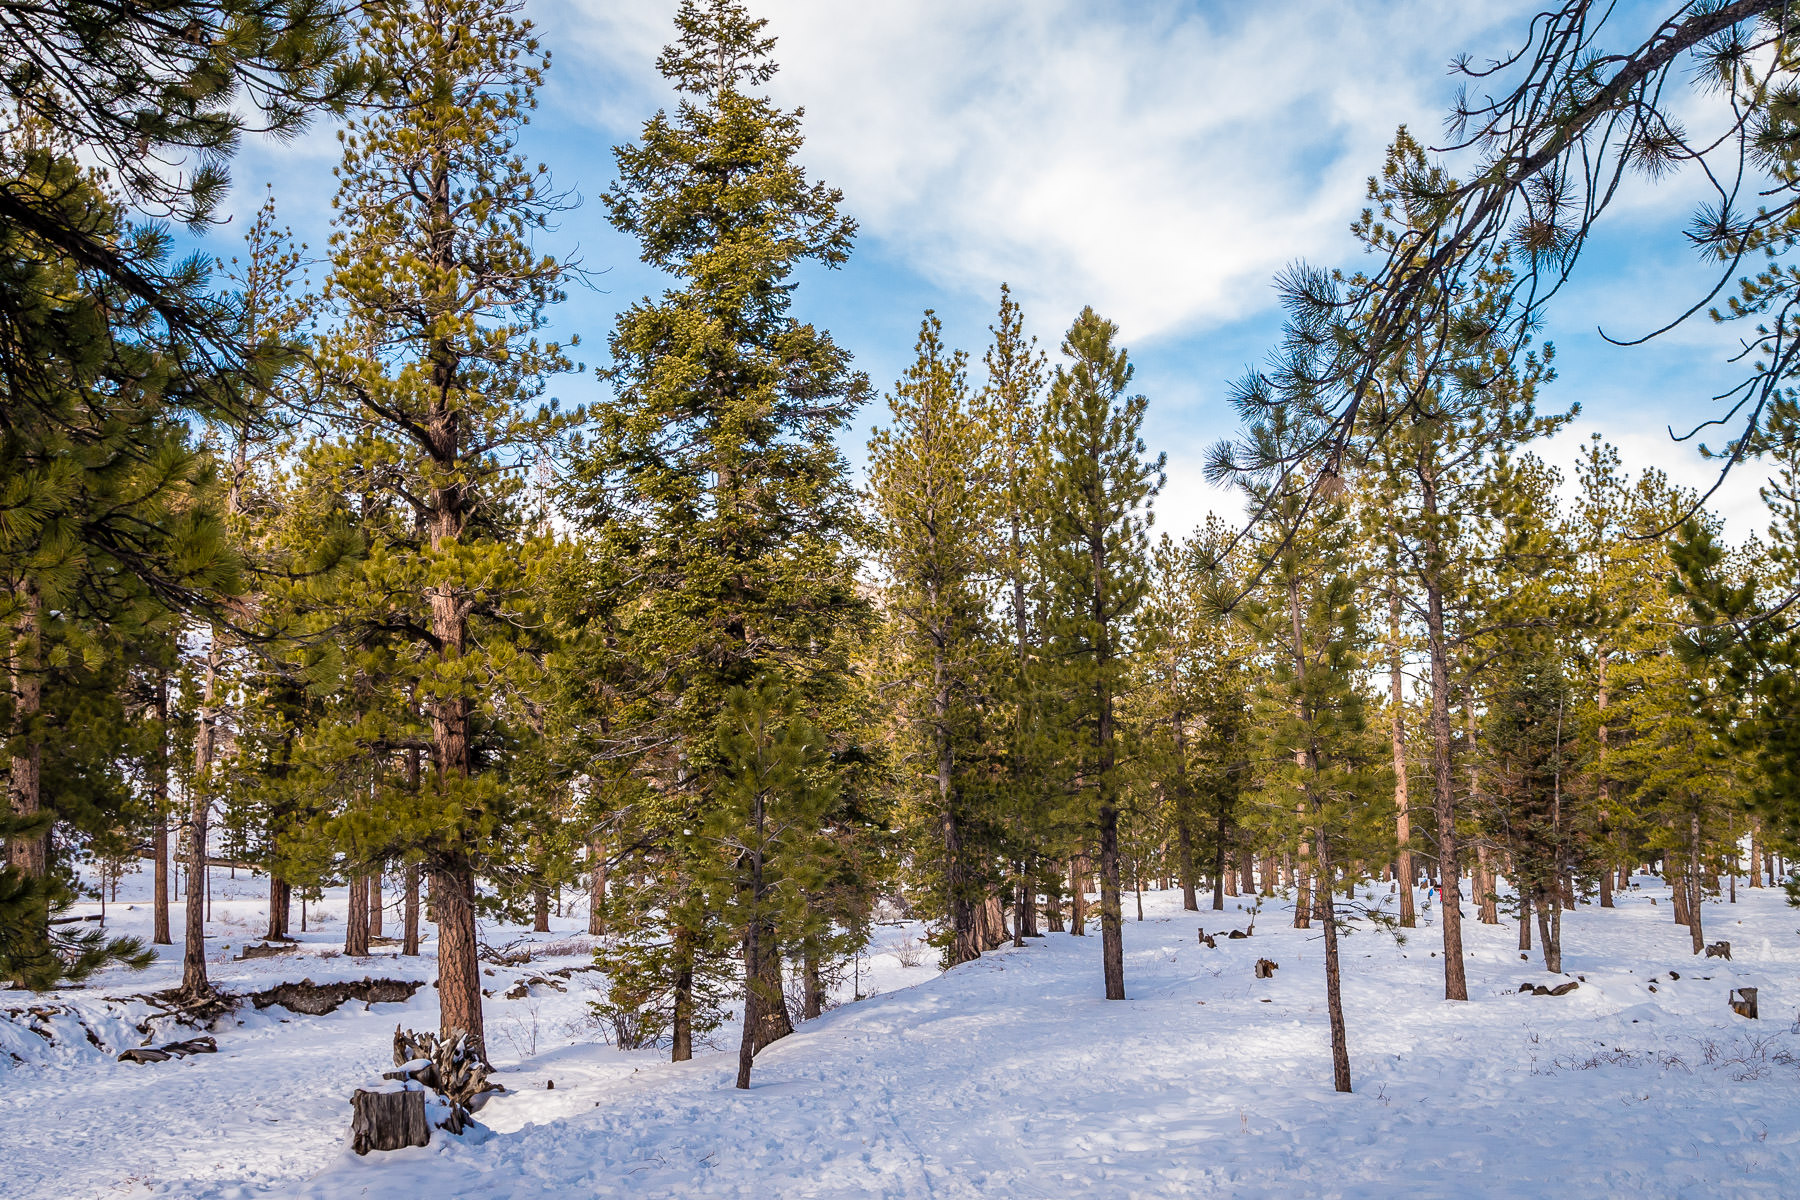 Evergreen pine trees rise from the snow-covered ground in the foothills of Nevada's Mount Charleston.